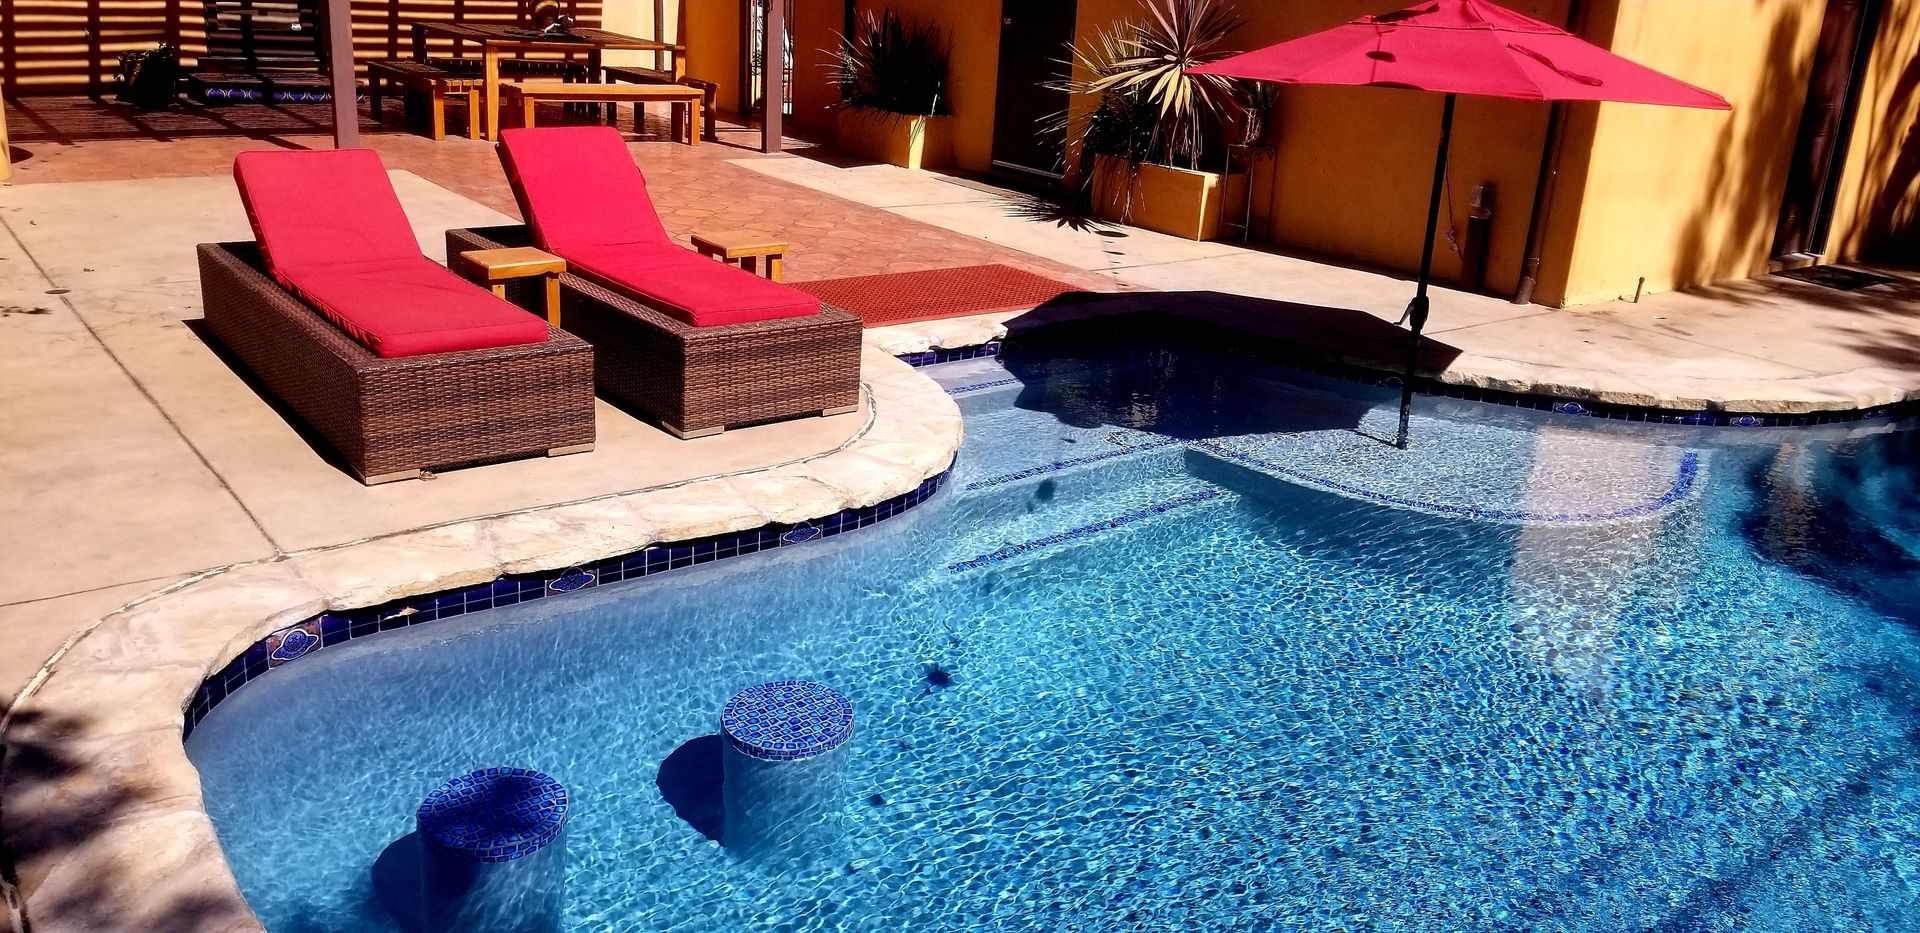 Spanish 3 bedroom home with entertainers backyard pool hot tub bbq ...